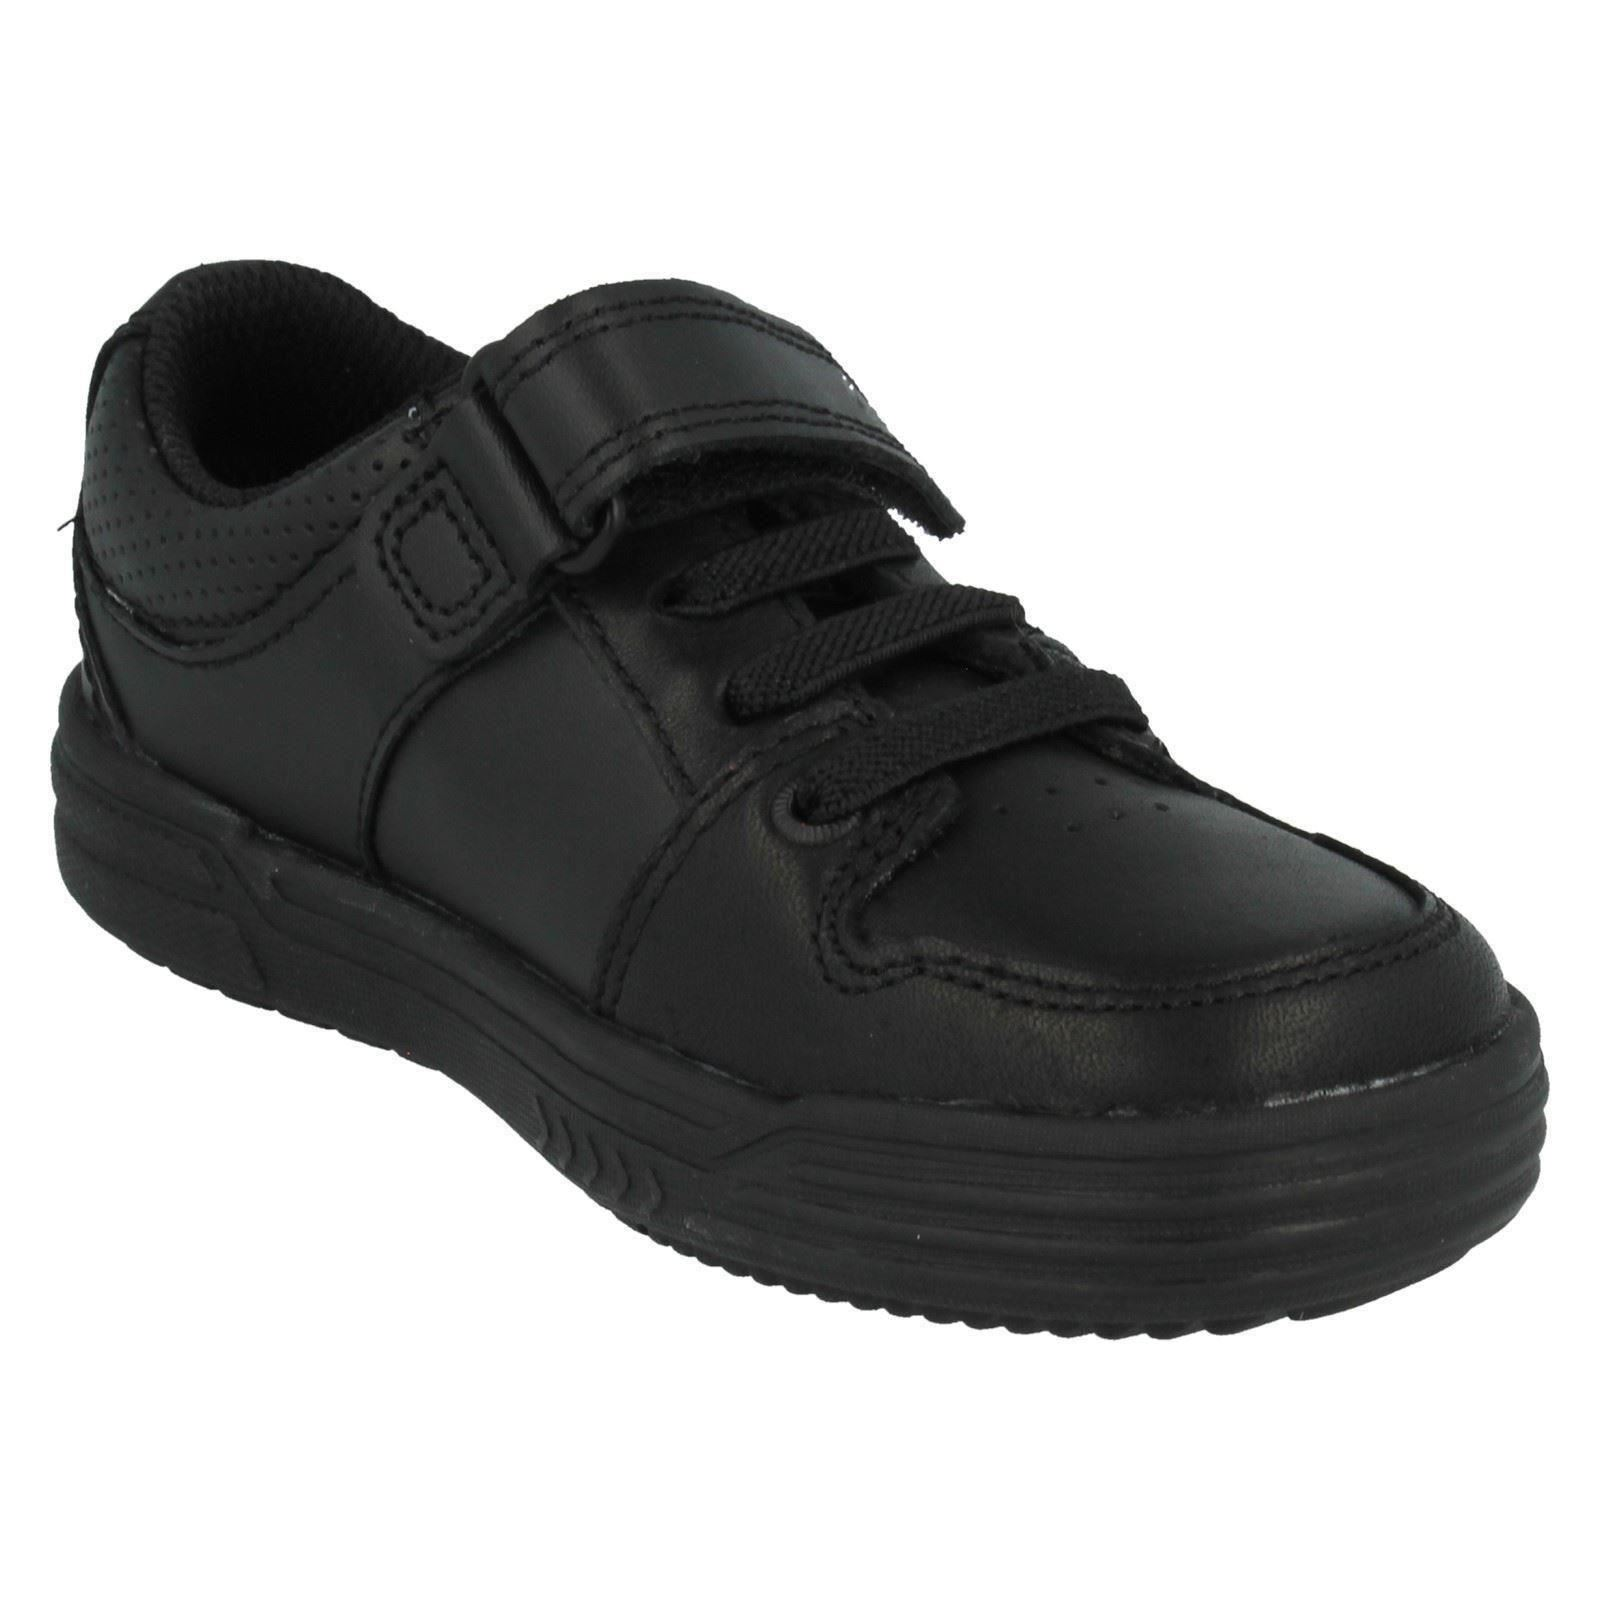 Boys Clarks Shoes Chad Slide